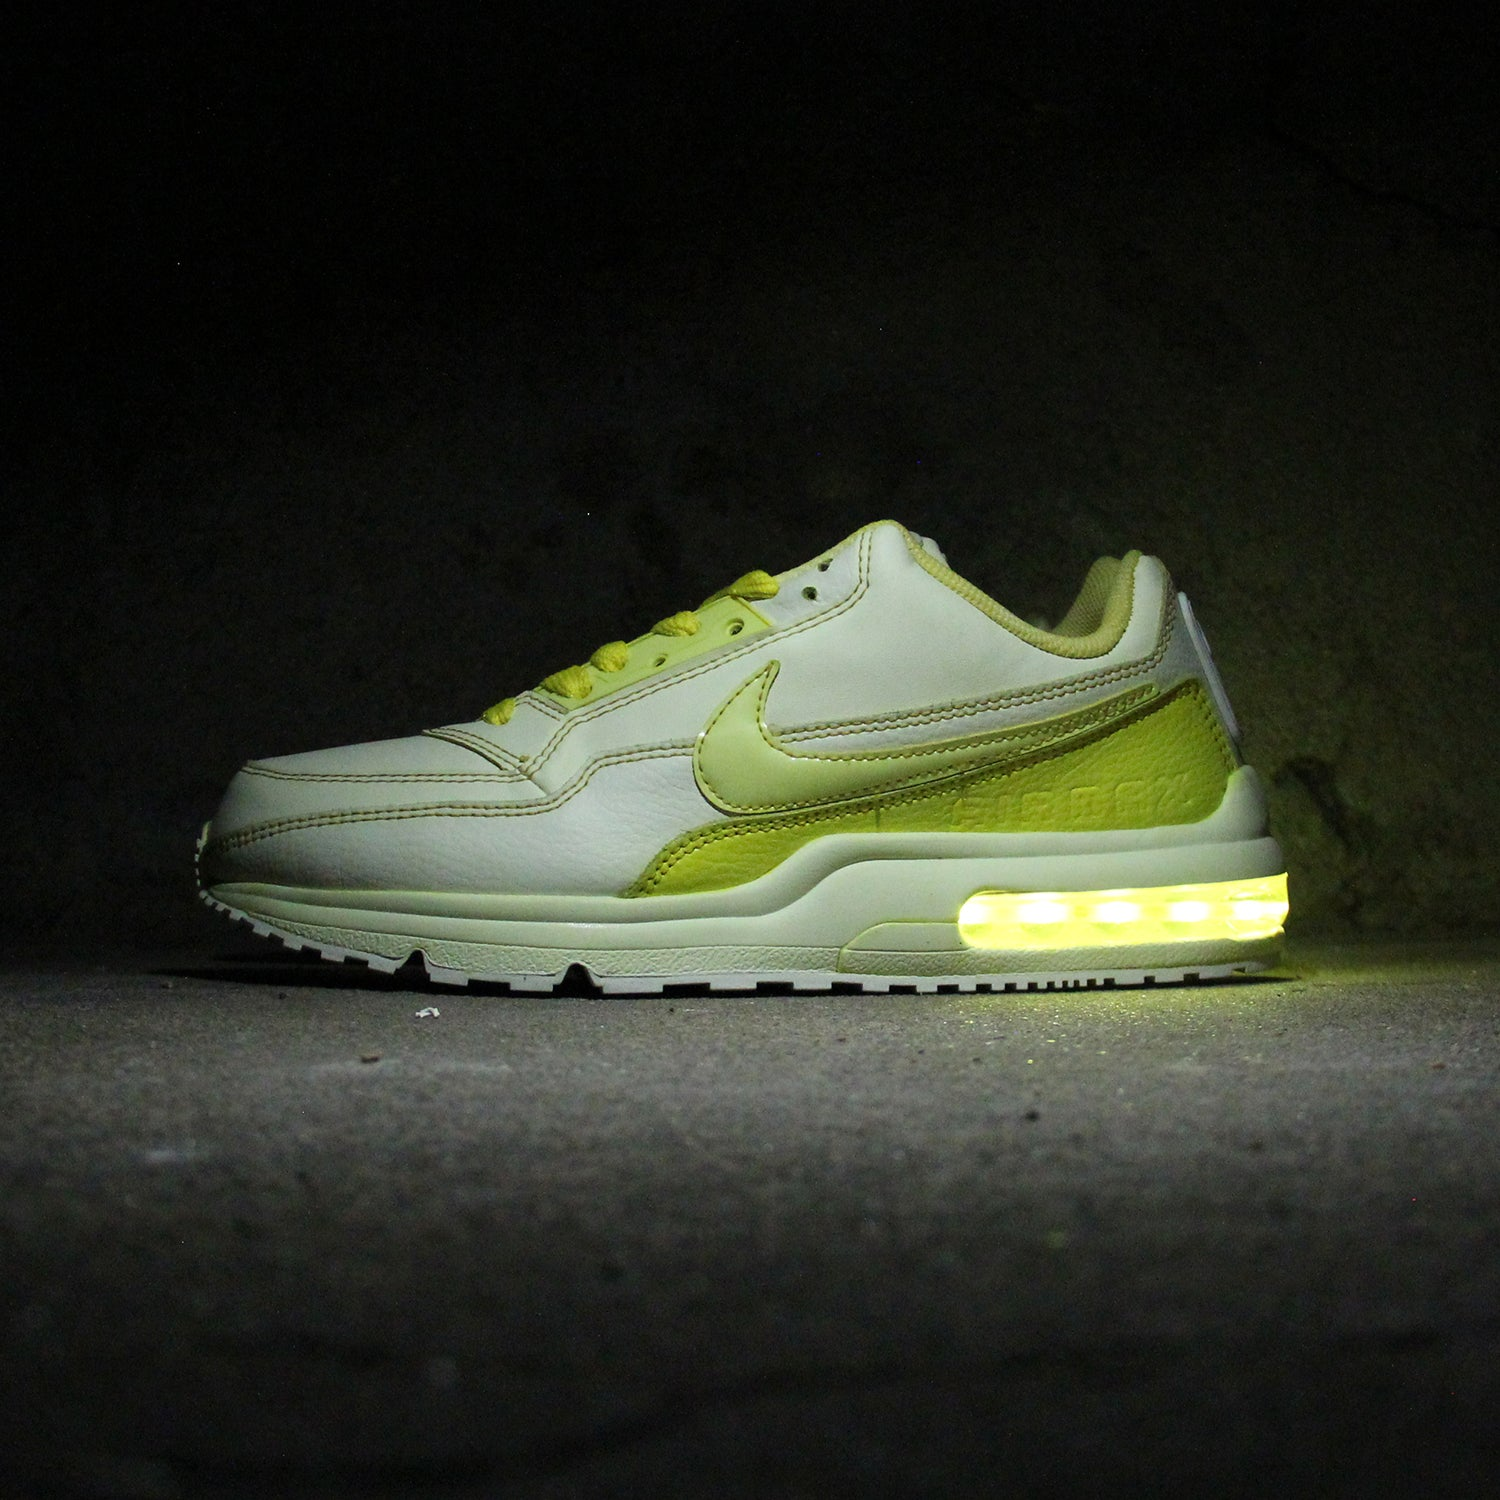 YELLOW DIP-DYED NIKE AIR MAX LTD WITH LIGHTS - Evolved Footwear